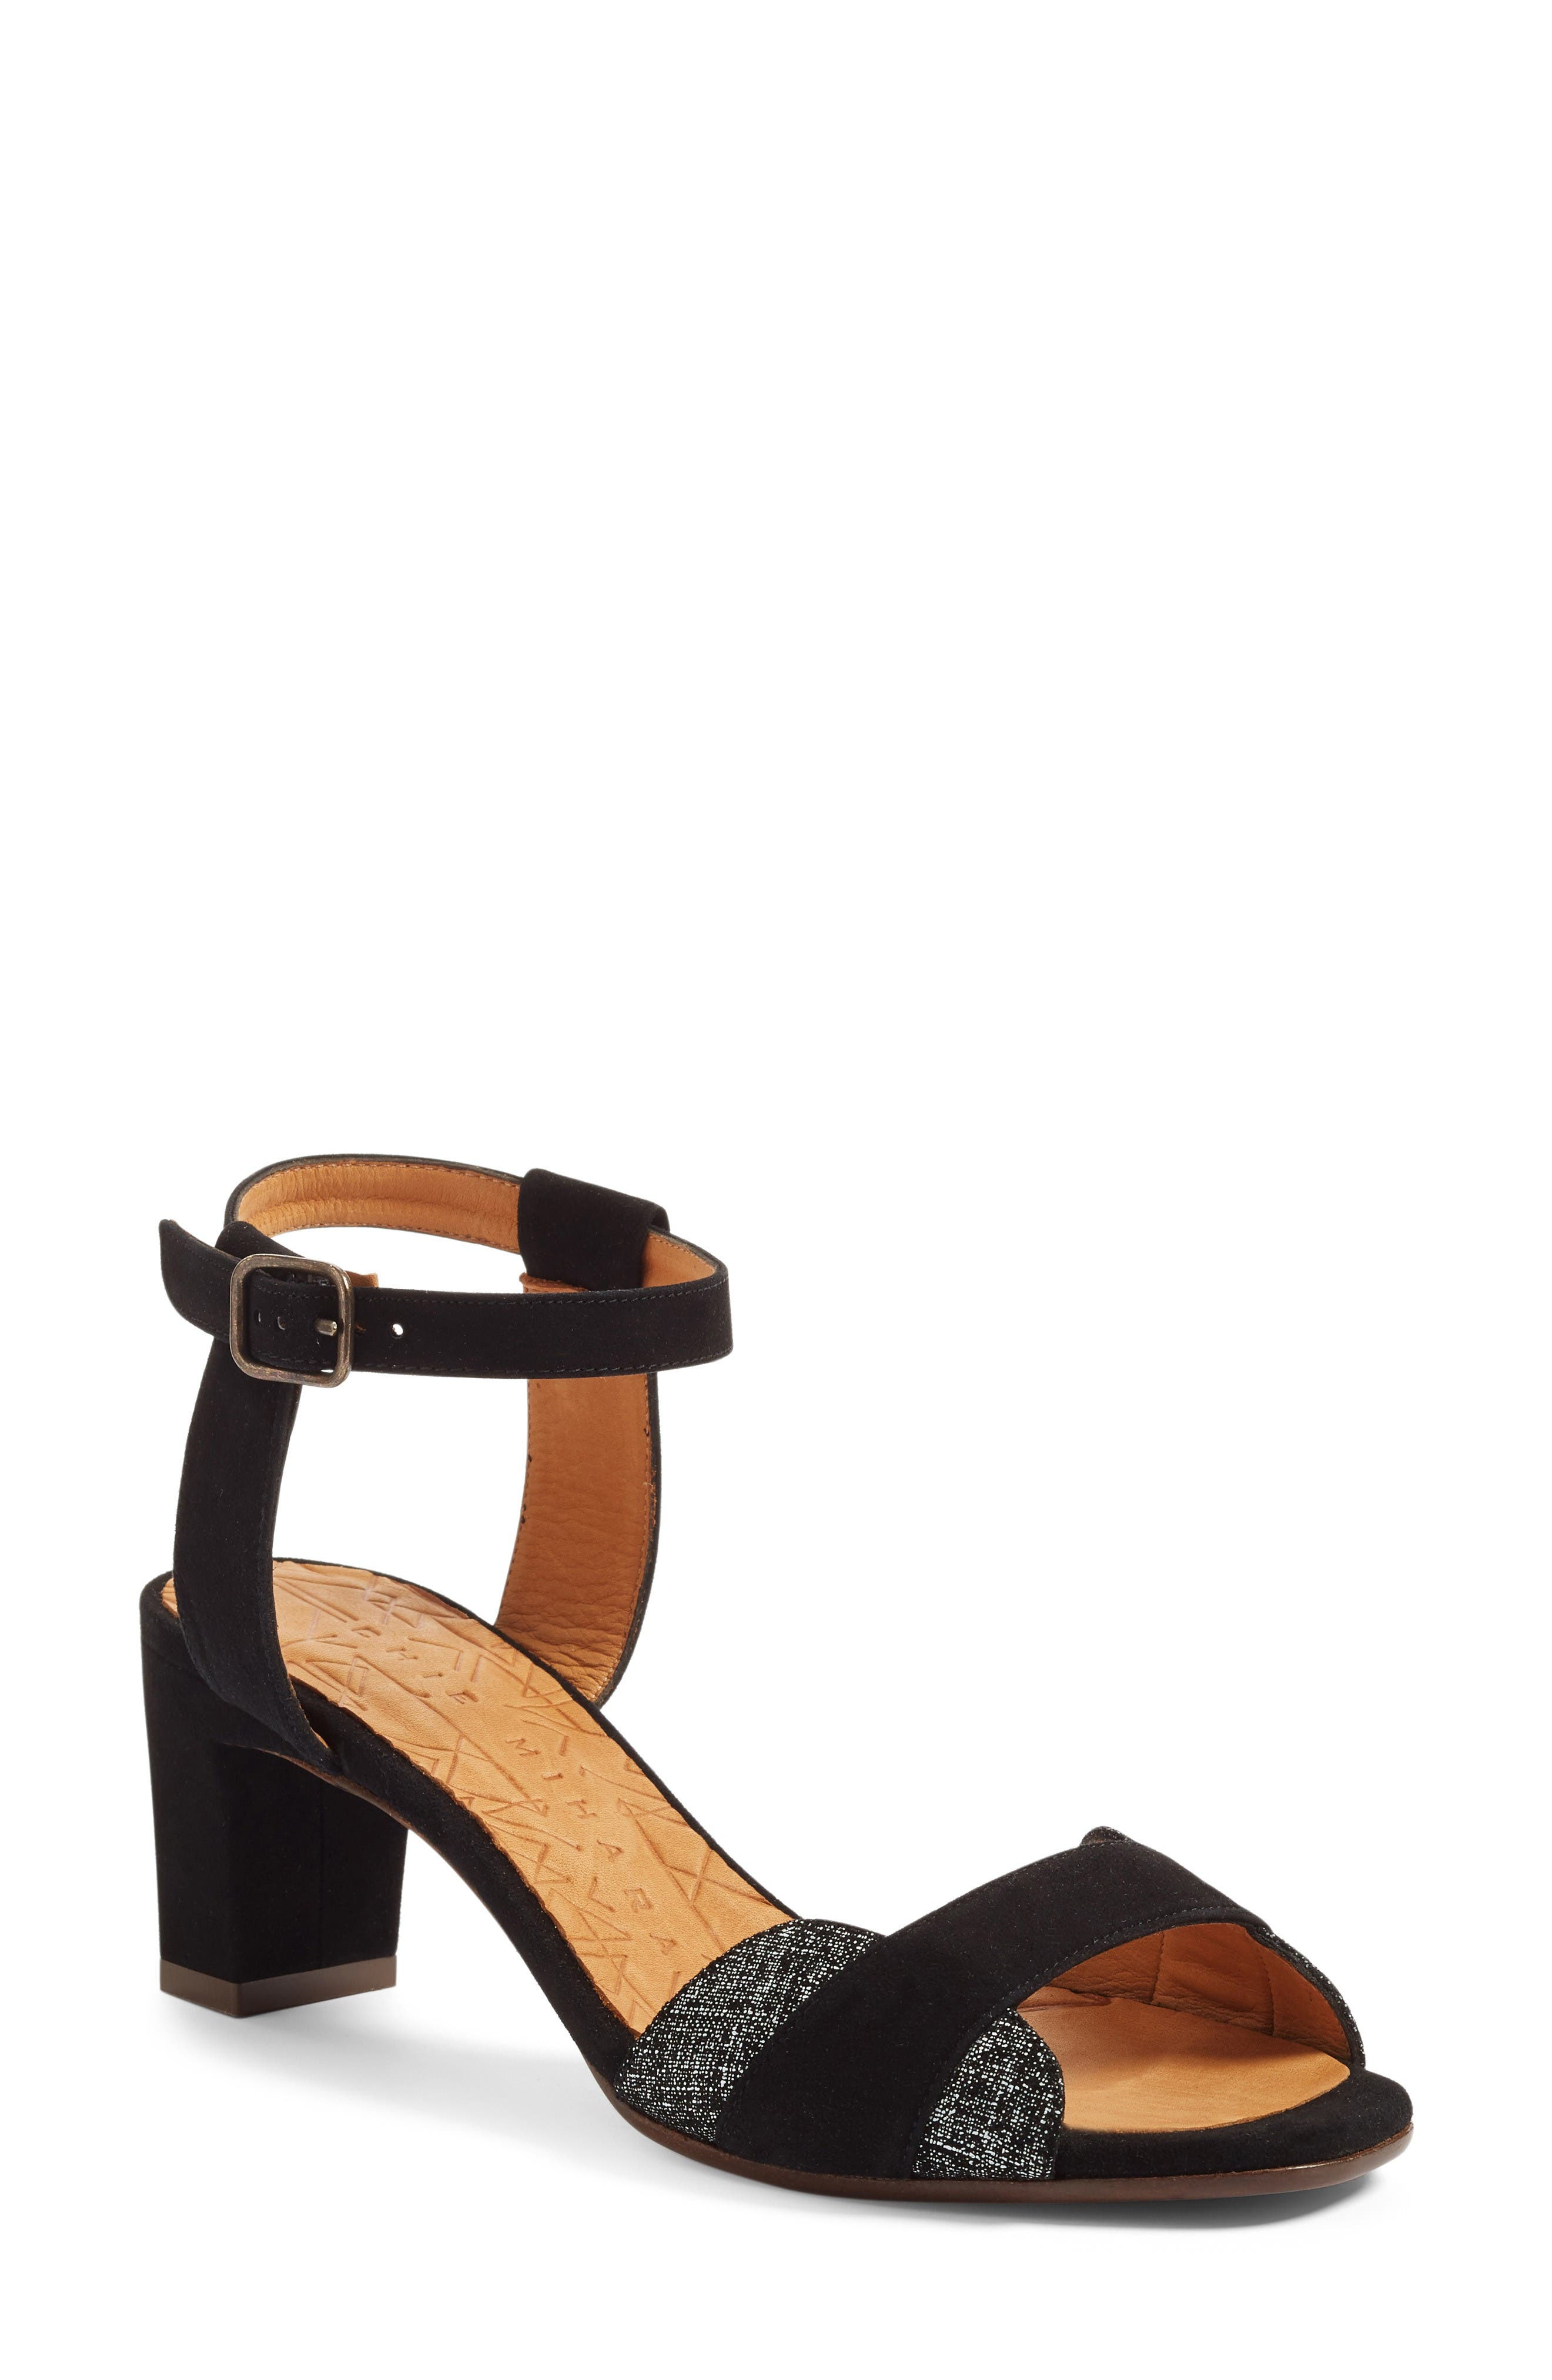 Alternate Image 1 Selected - Chie Mihara Kesya Sandal (Women)